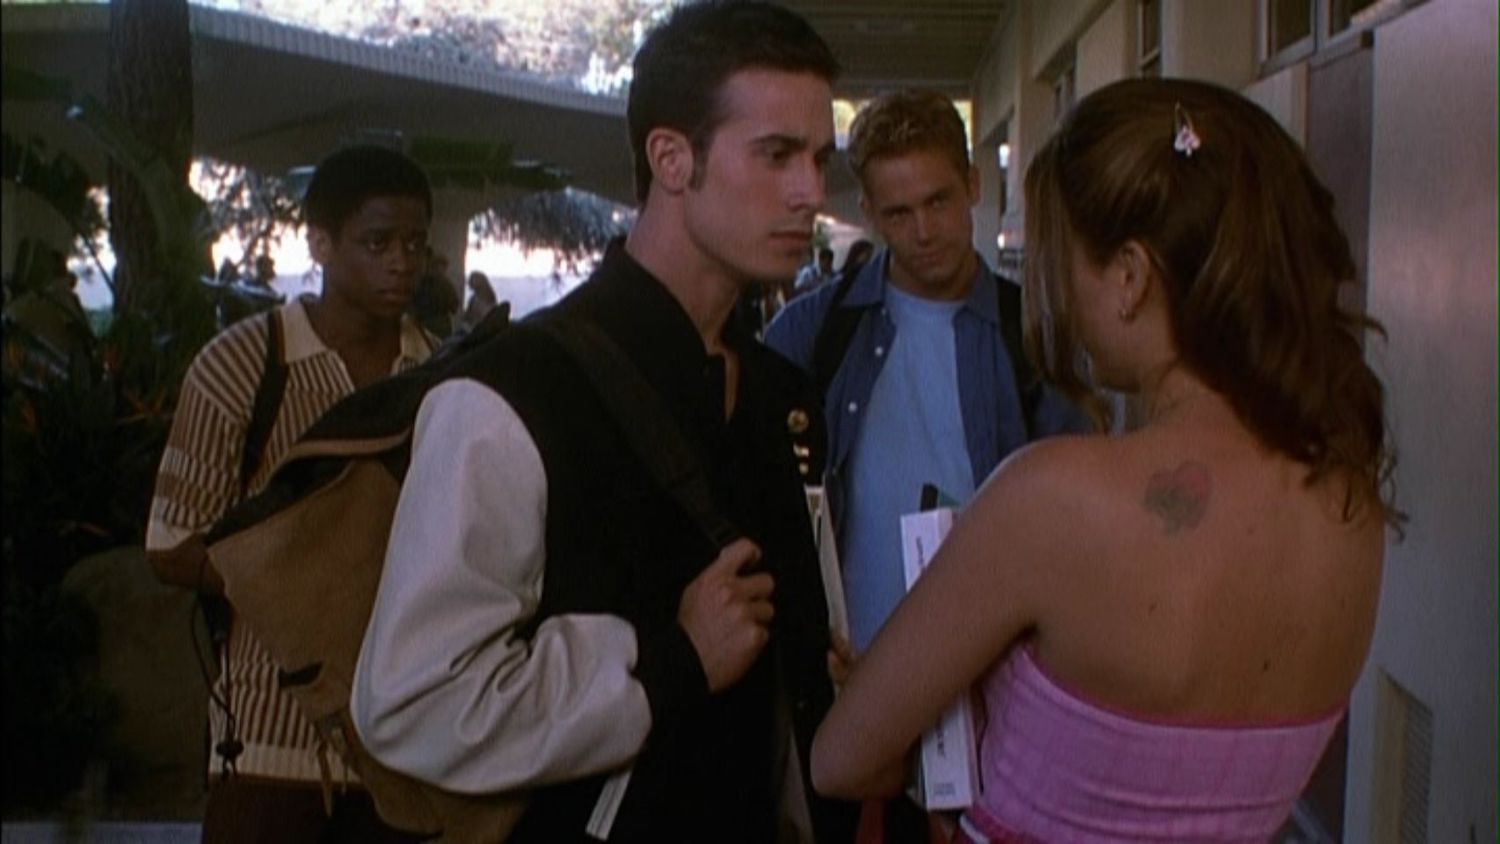 Addison Rae's new film already a huge flop 'He's All That' Know Why it is Flop? Main Reason